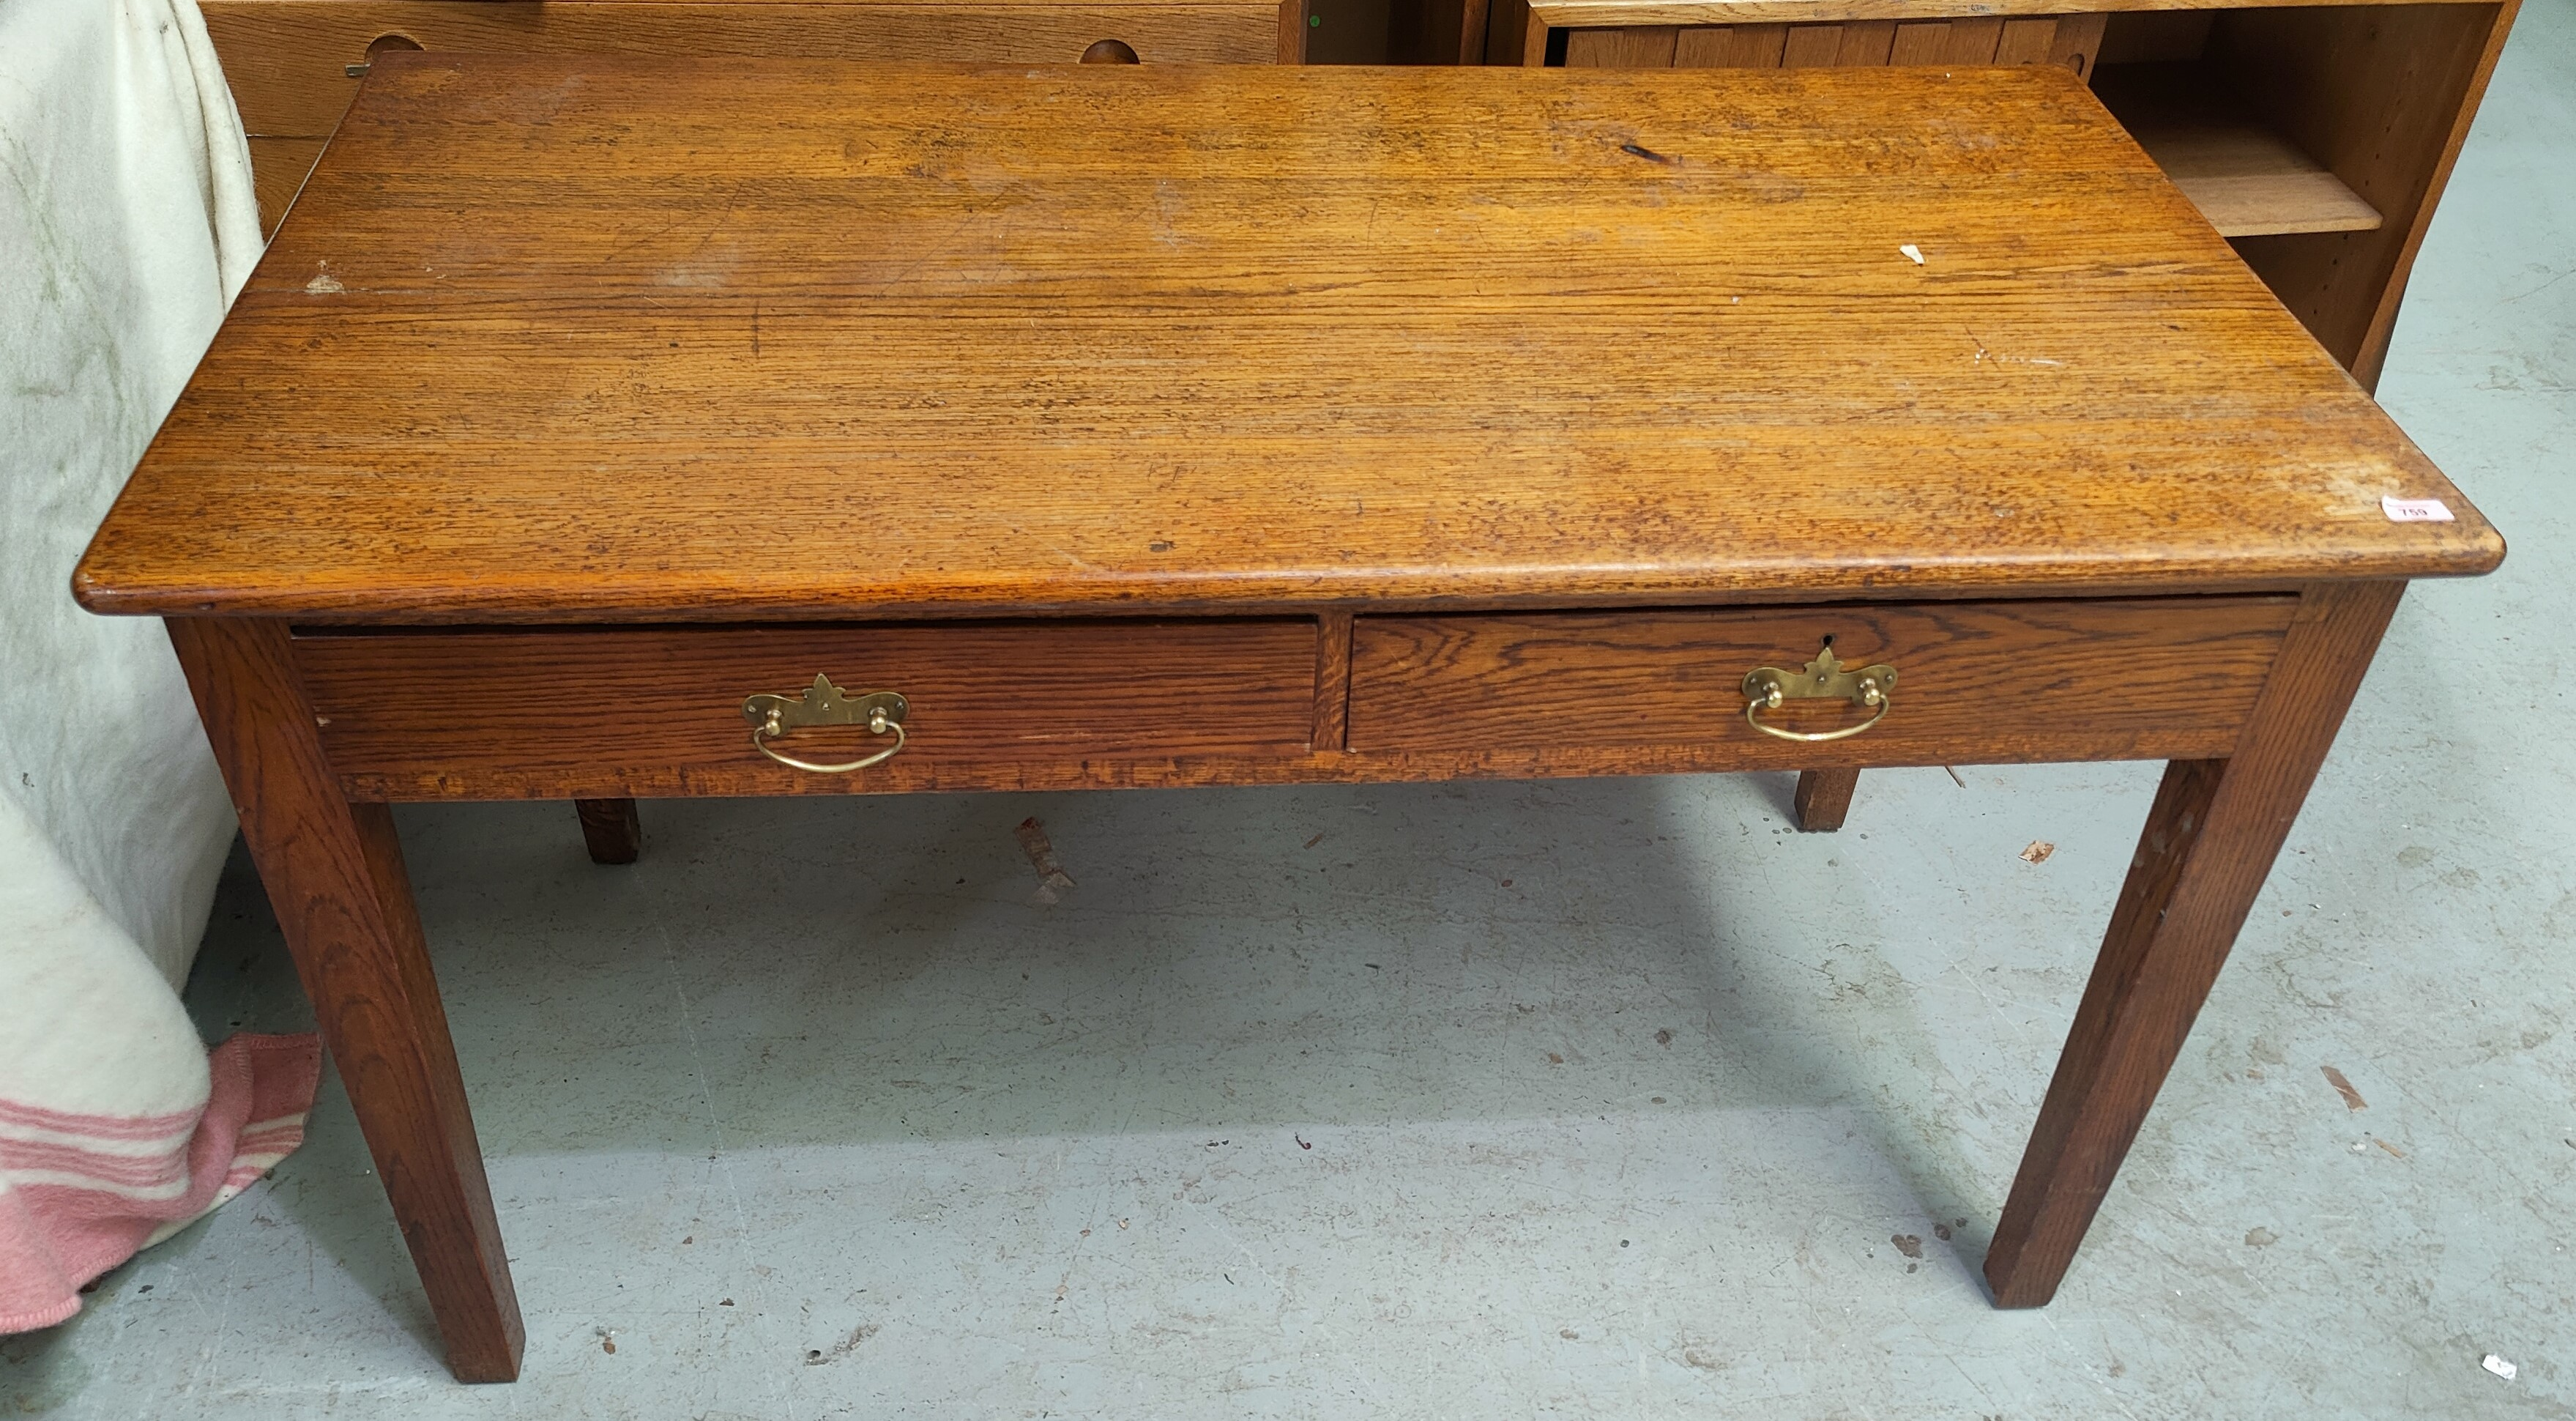 An early 20th century oak desk, possibly military, with crown G.R.V. stamped under, with two